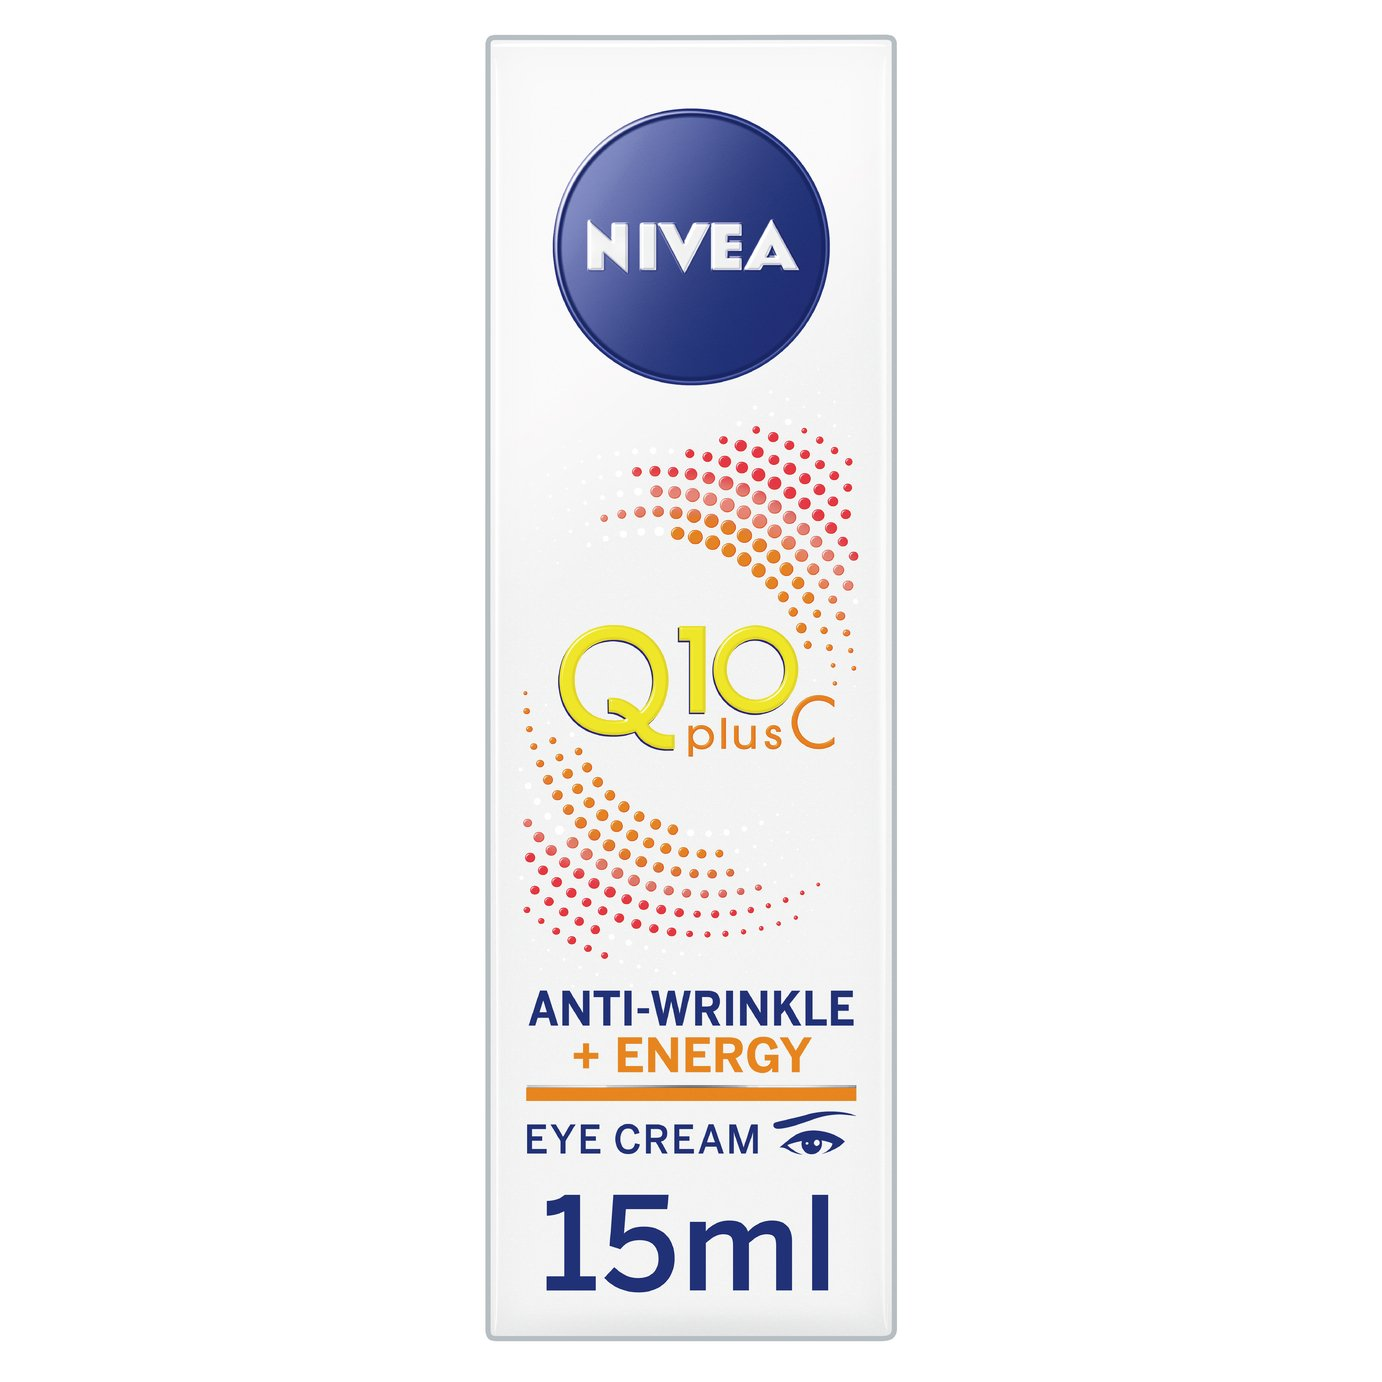 Nivea Q10 Eye Cream - 15ml